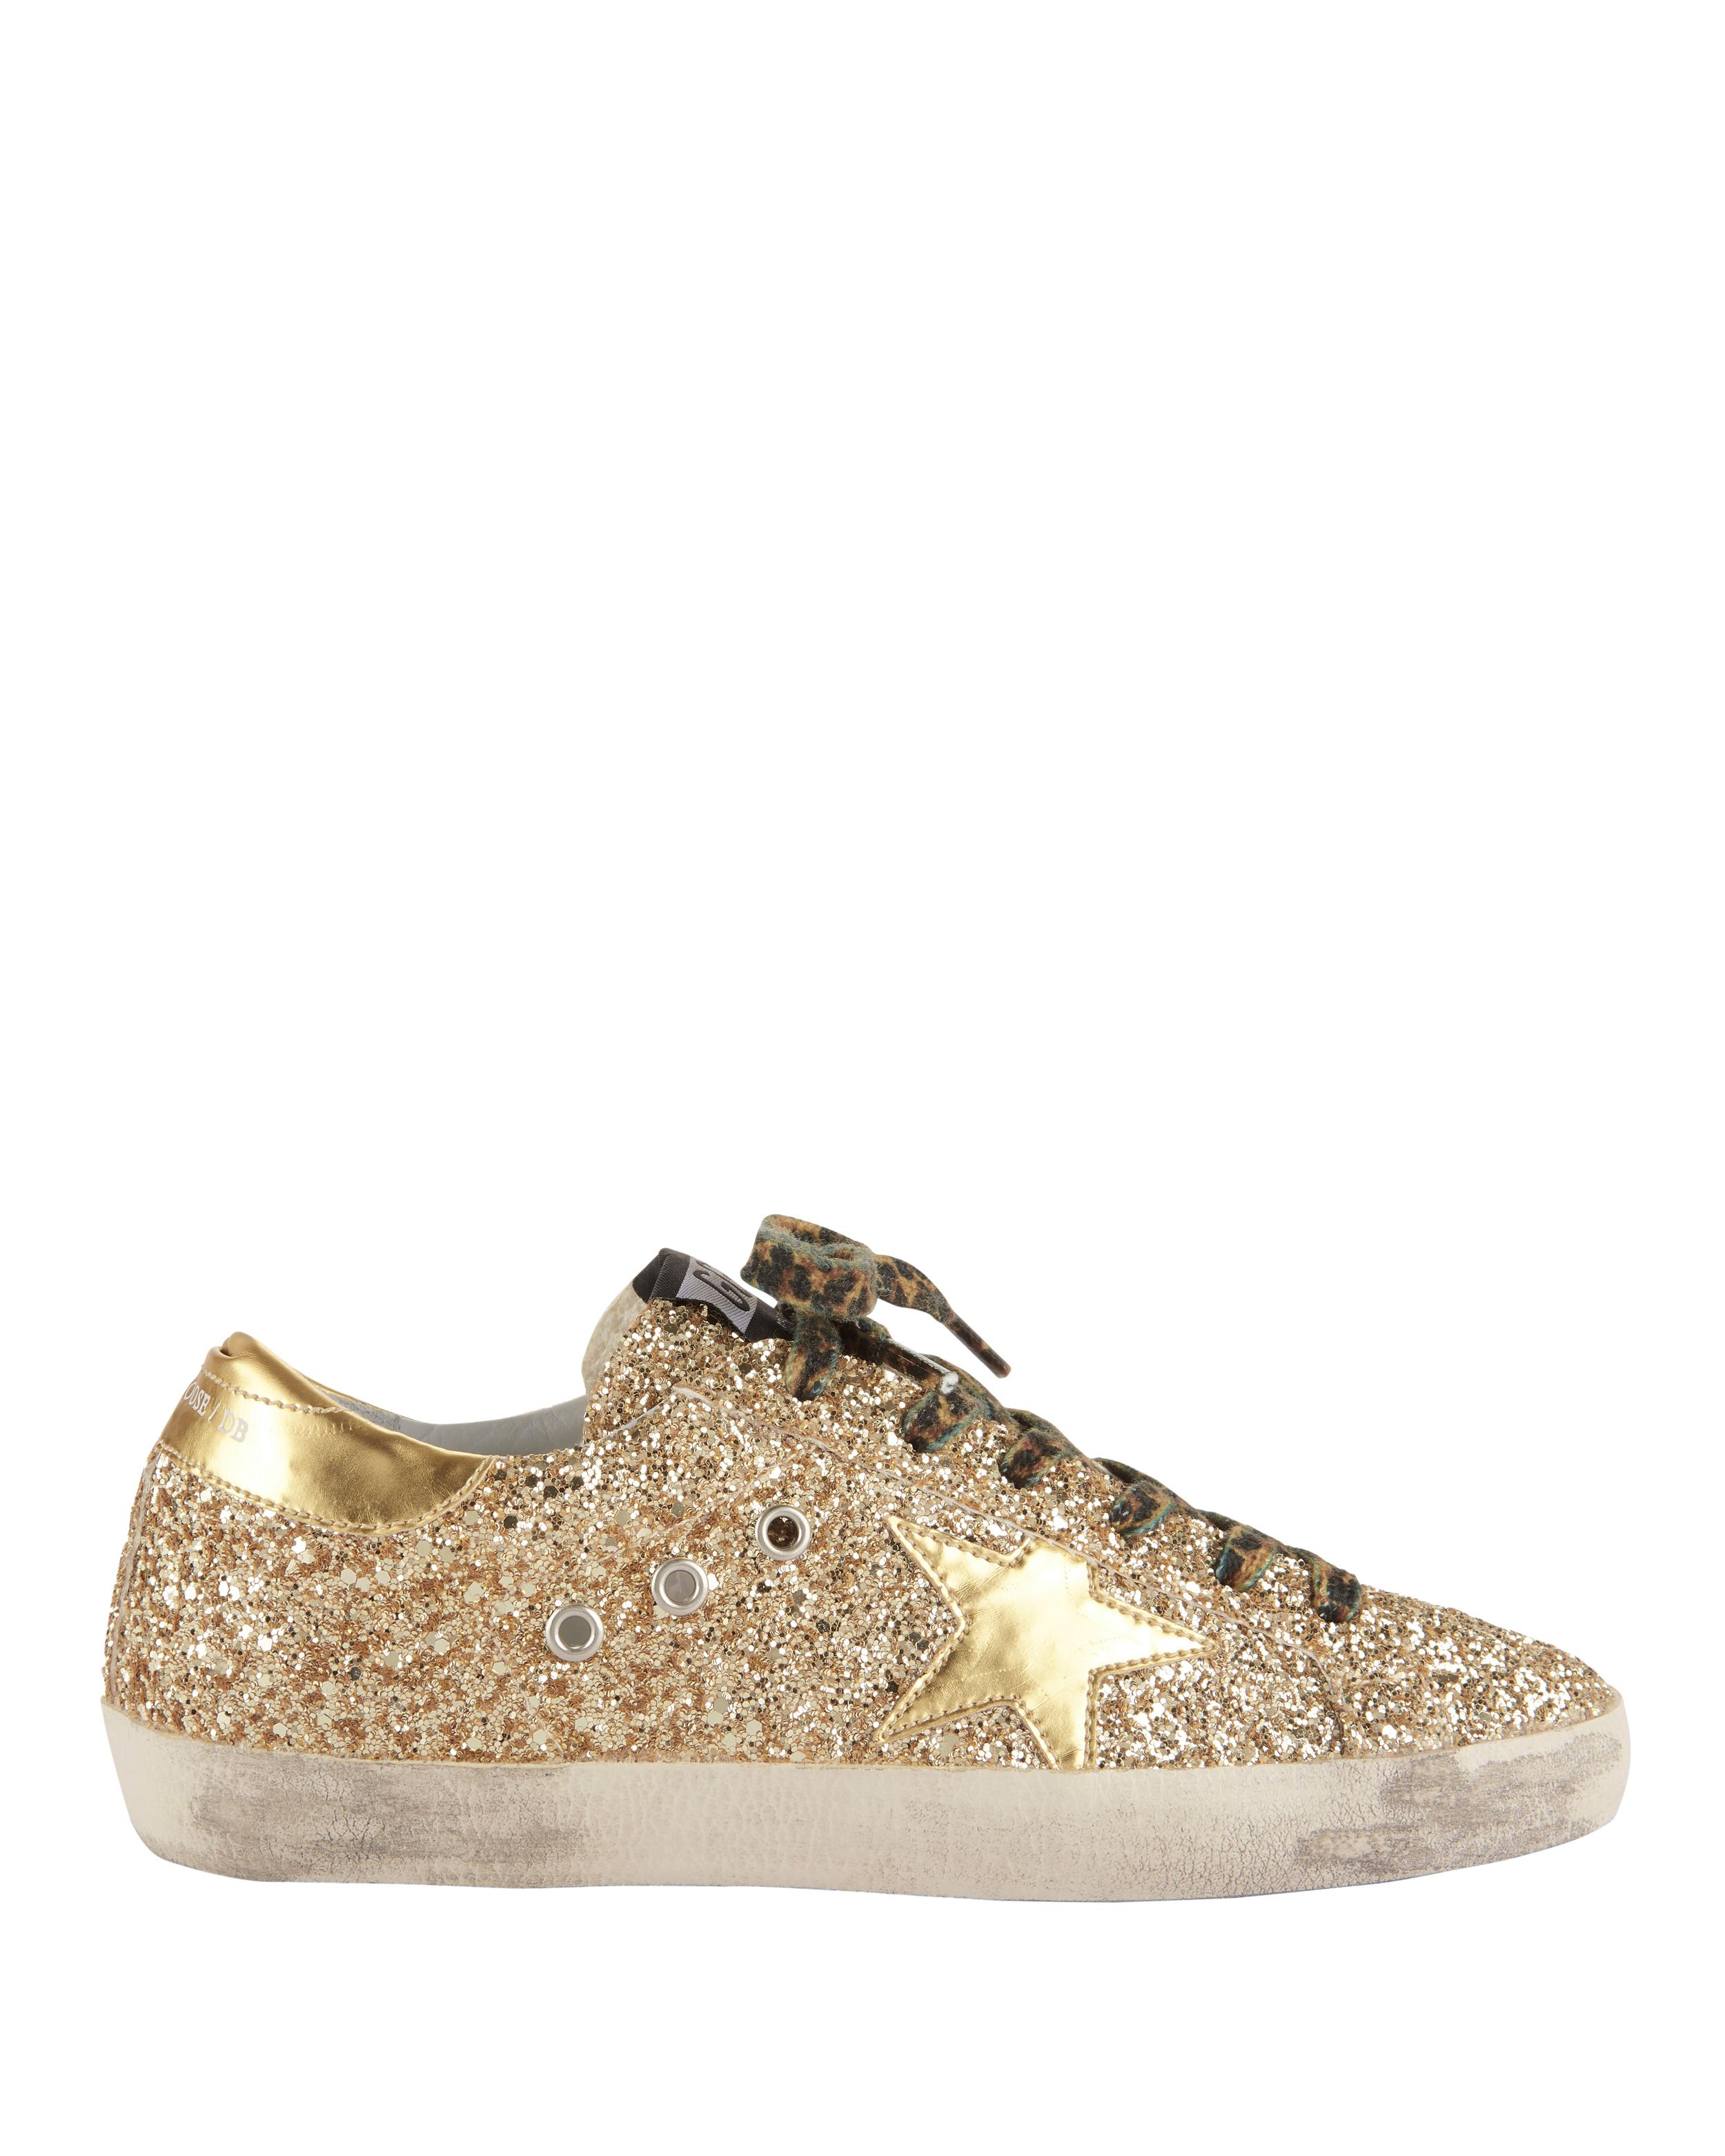 Sale - Superstar Glitter Lace-Up Trainers - Golden Goose Deluxe Brand Golden Goose Finishline Cheap Price Sale Best Store To Get Cheap Best Outlet Newest Cz8Vf5m